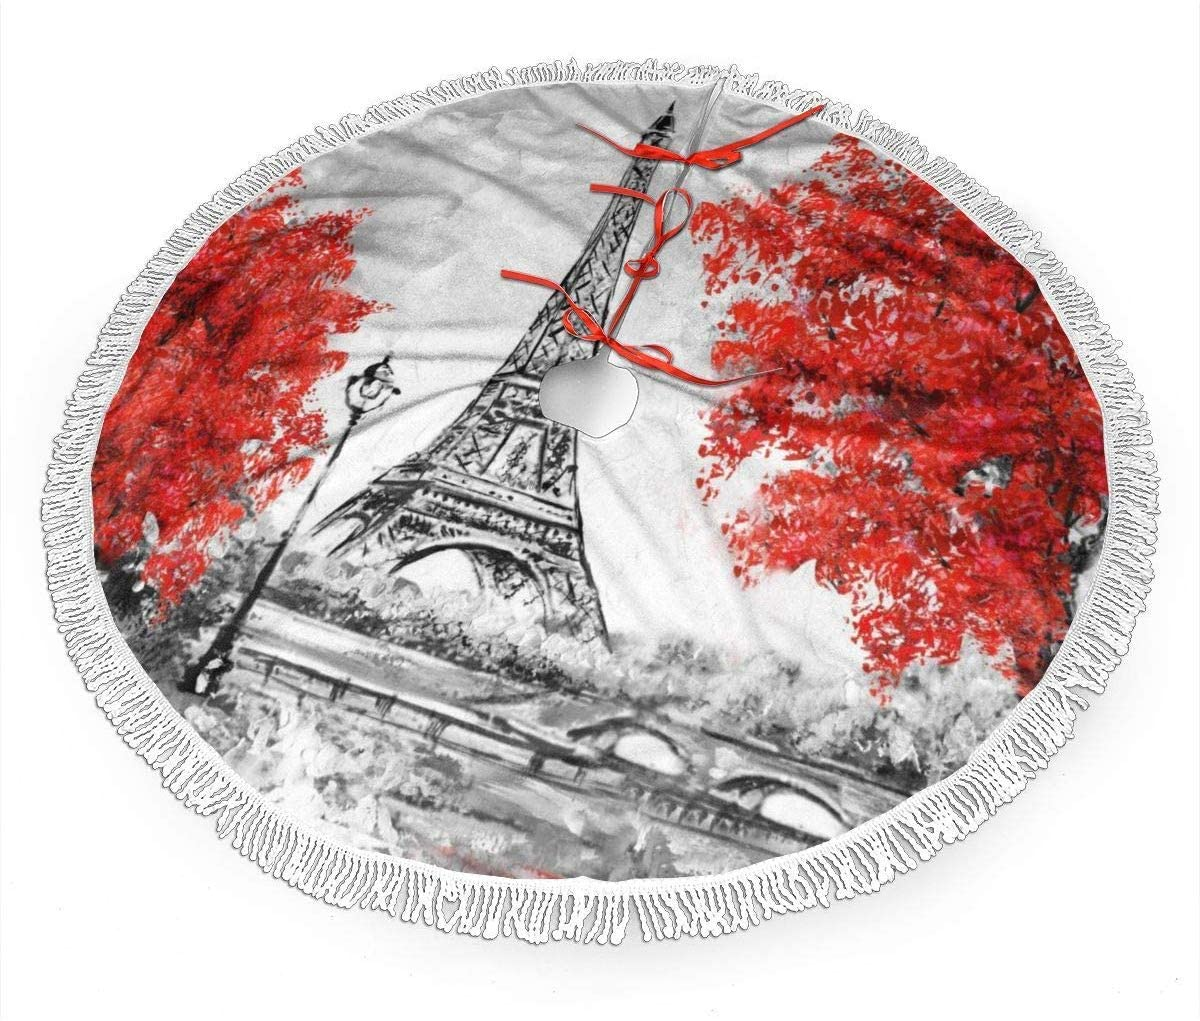 Boutique 9 Paris European City Eiffel Tower Christmas Tree Skirts,Large Round Xmas Tree Skirt Mat for Xmas Decorations,Christmas Party Holiday Ornaments 30